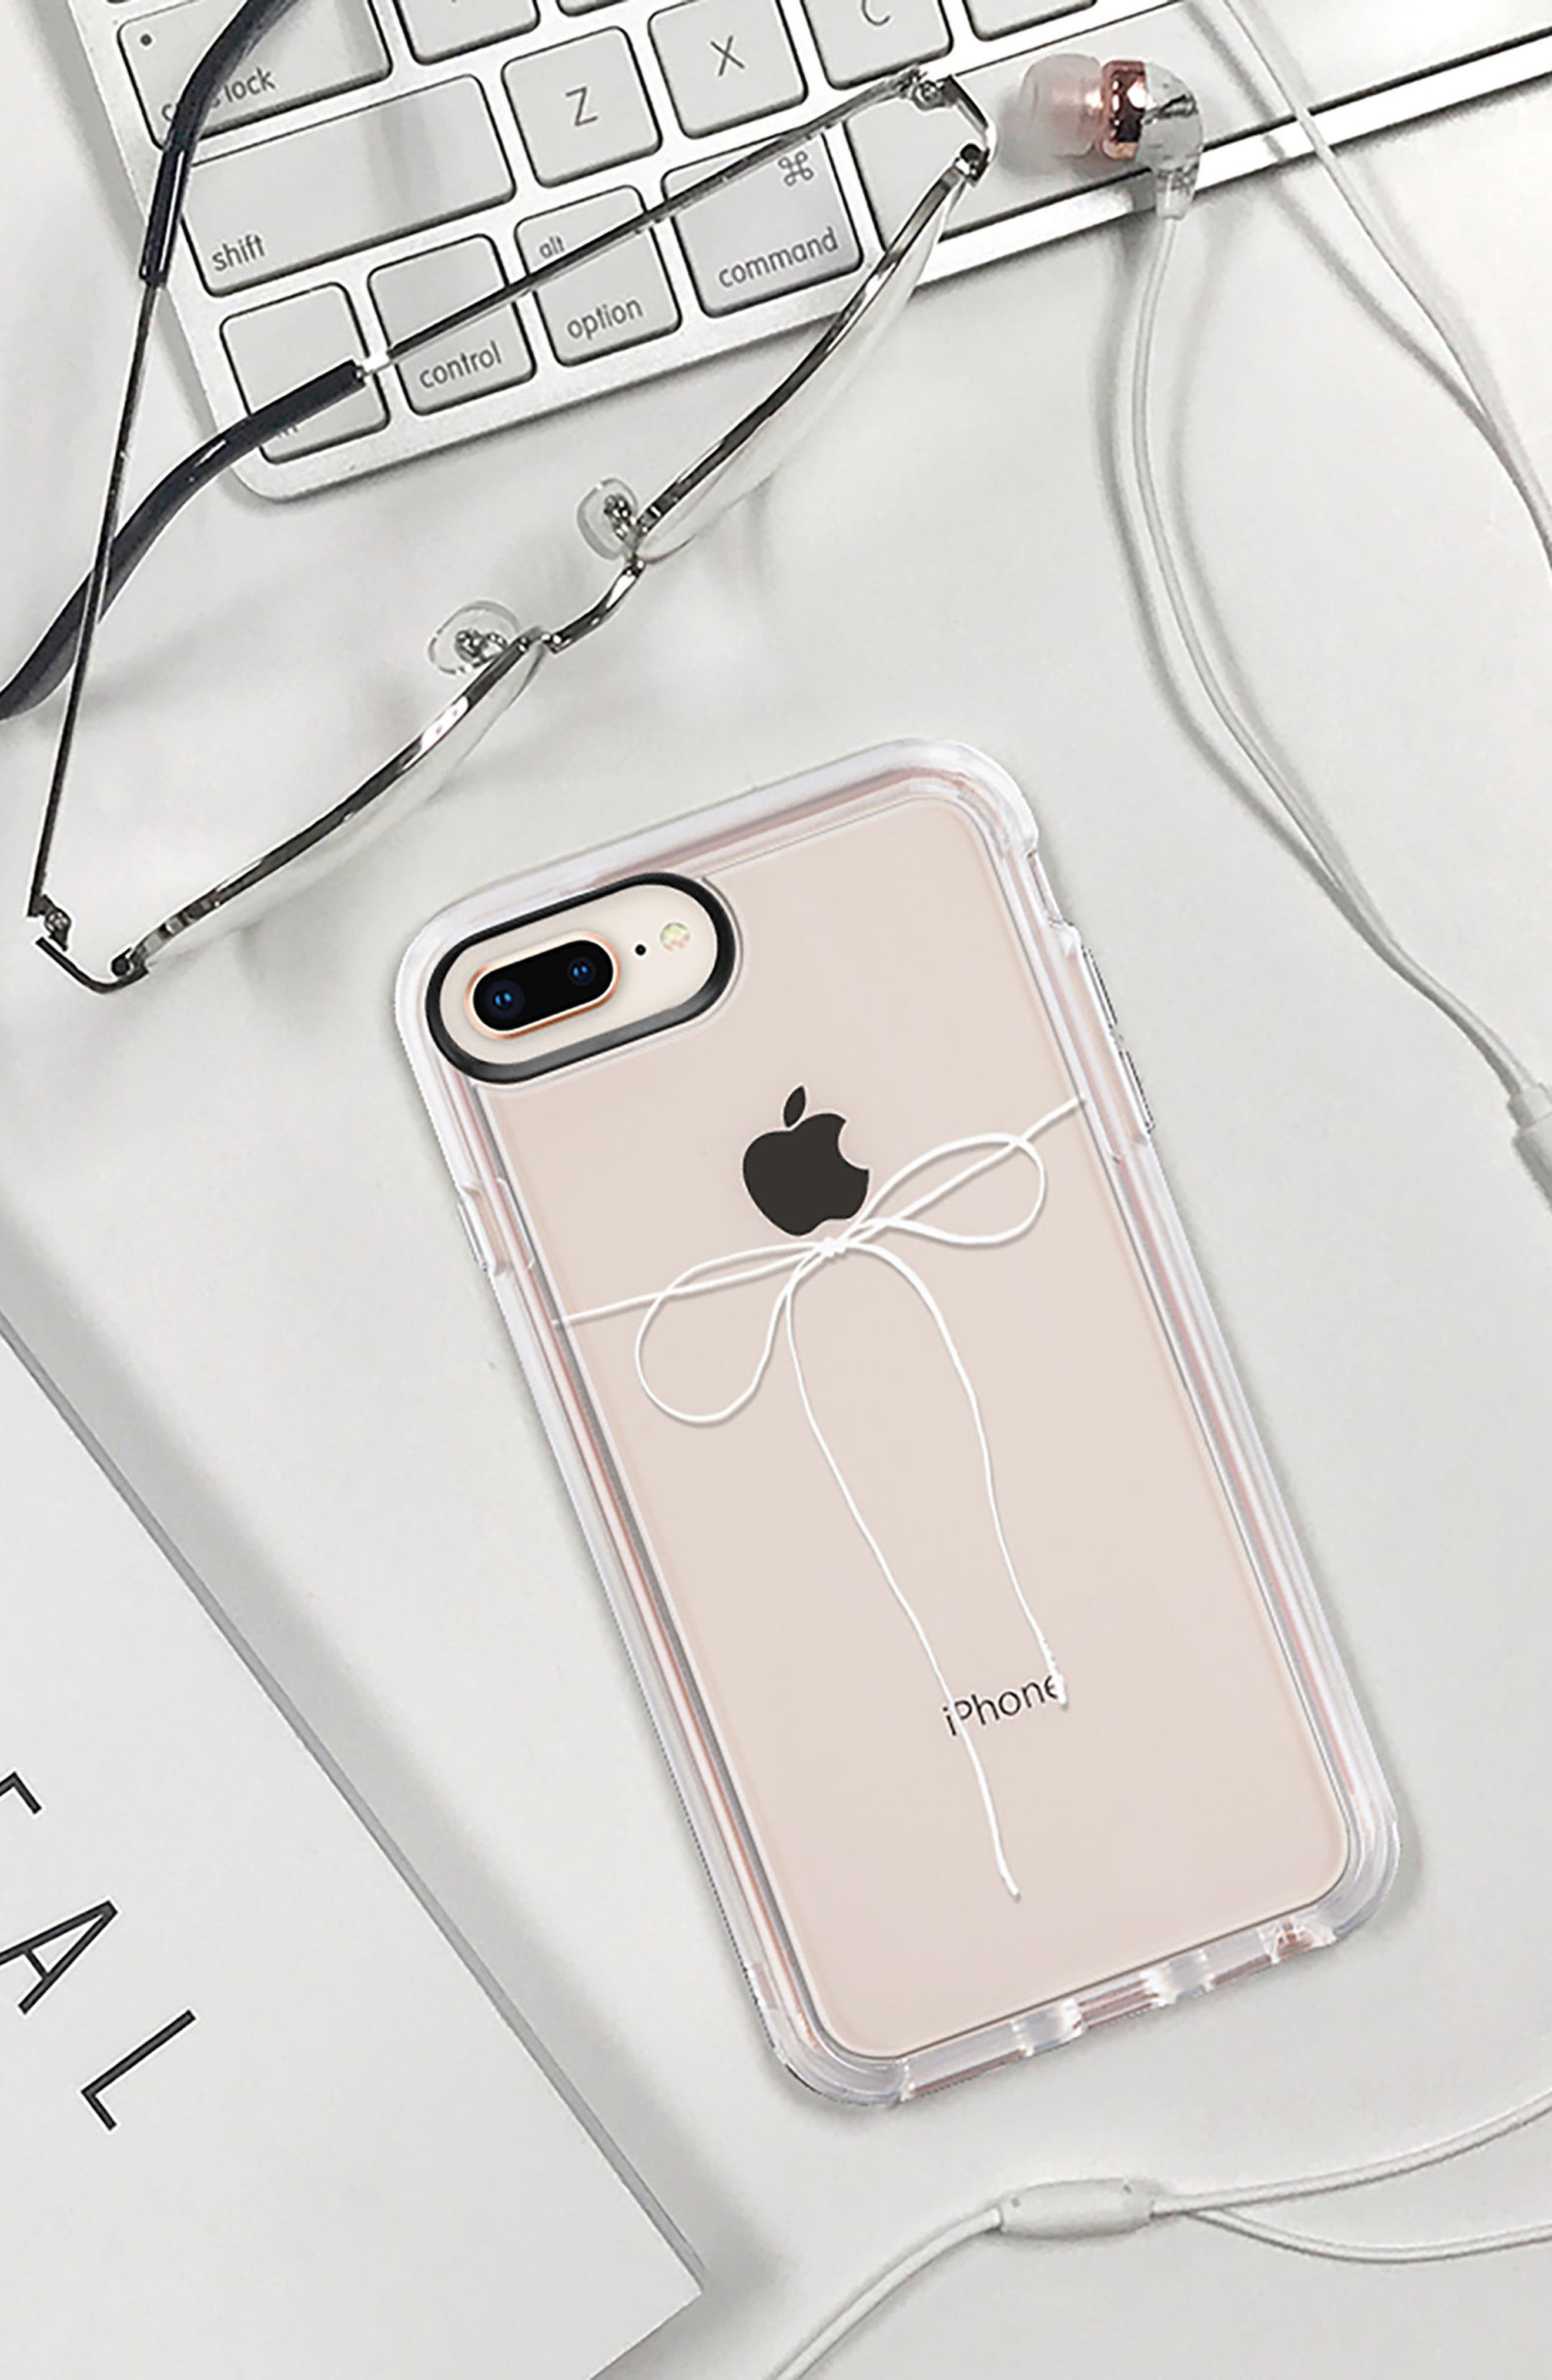 Take a Bow iPhone 7/8 & 7/8 Plus Case,                             Alternate thumbnail 9, color,                             CLEAR WHITE